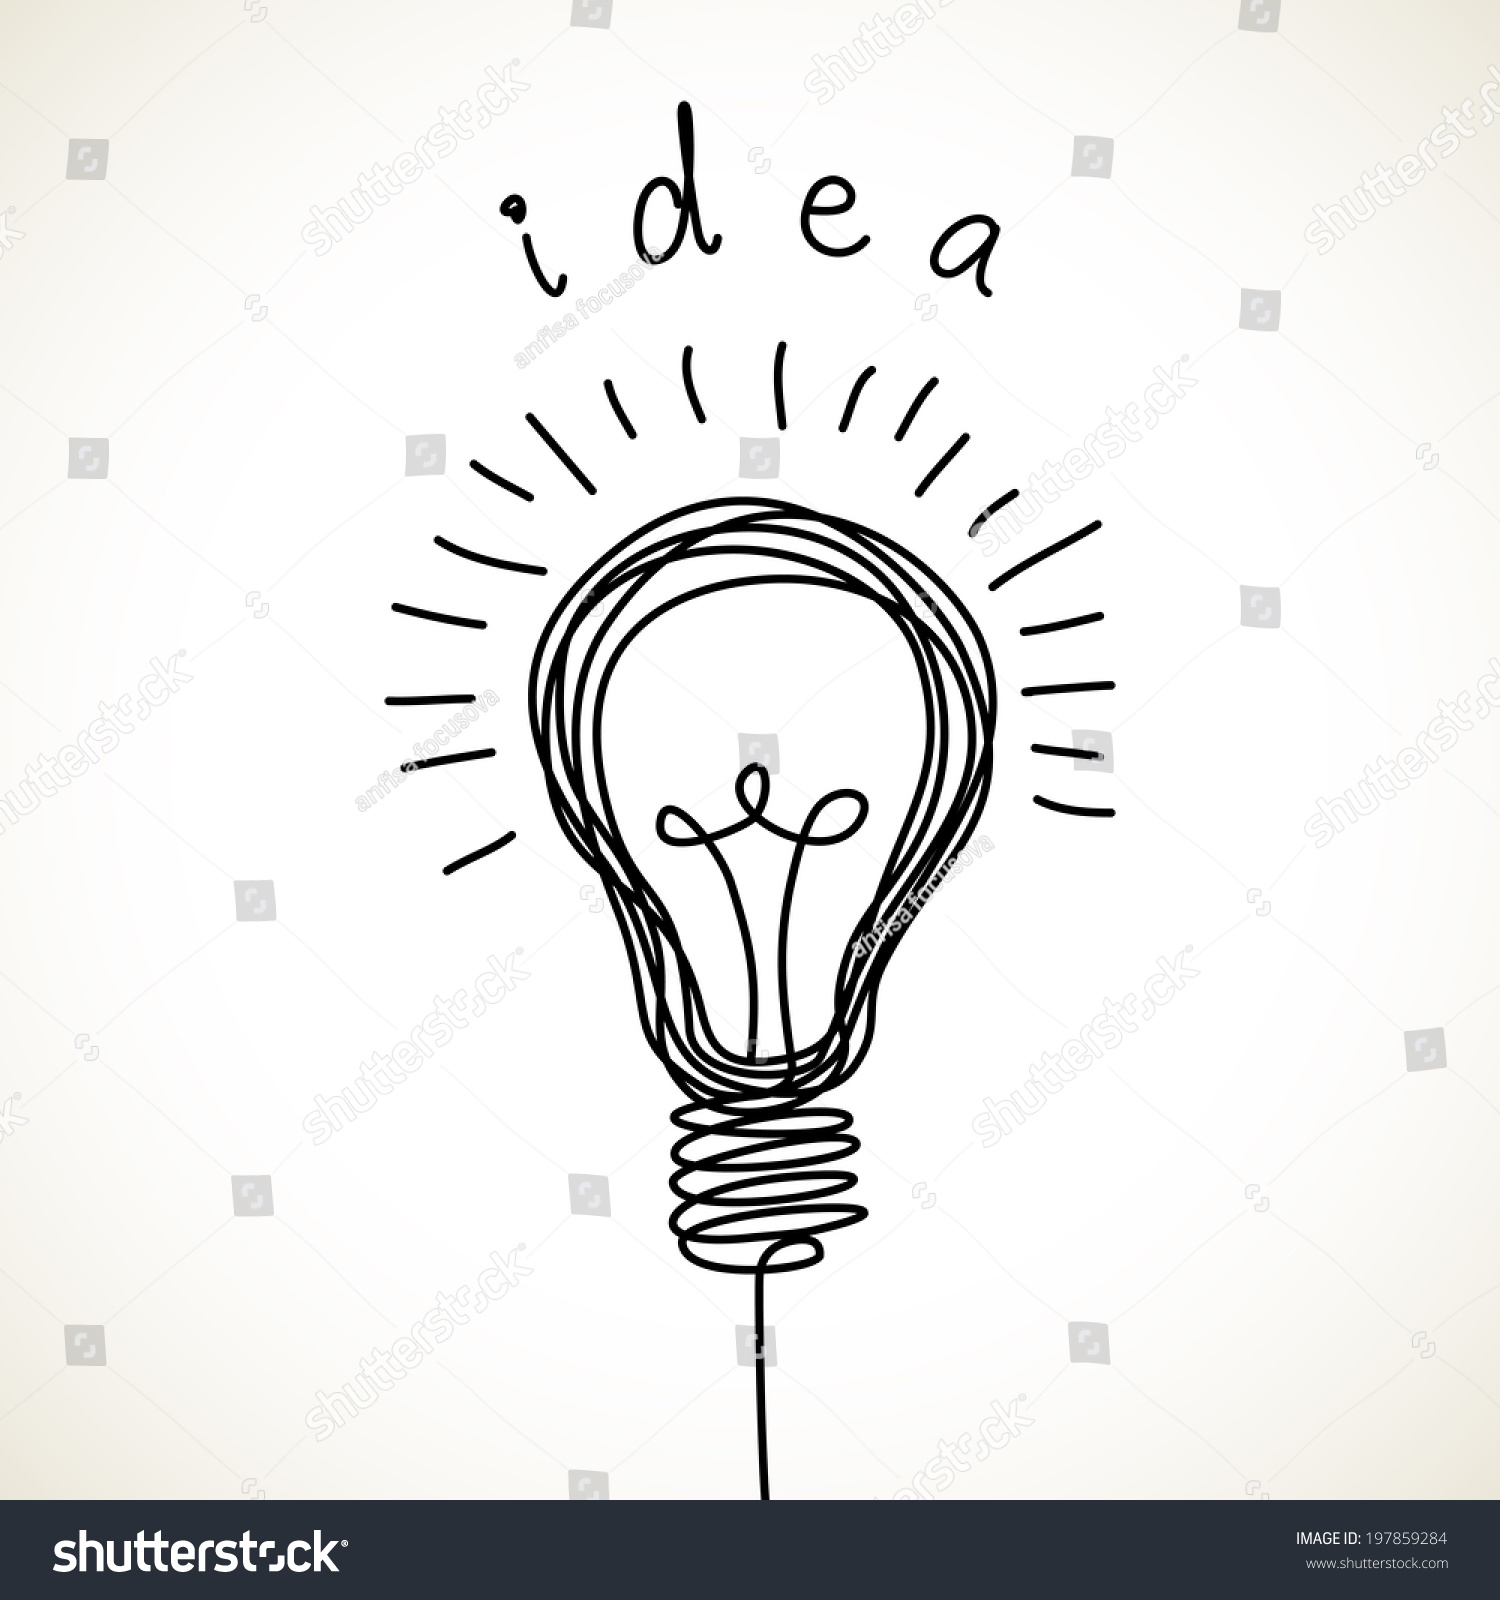 Set Of Hand Drawn Light Bulbs Symbol Of Ideas Stock: Vector Light Bulb Icon With Concept Of Idea. Doodle Hand